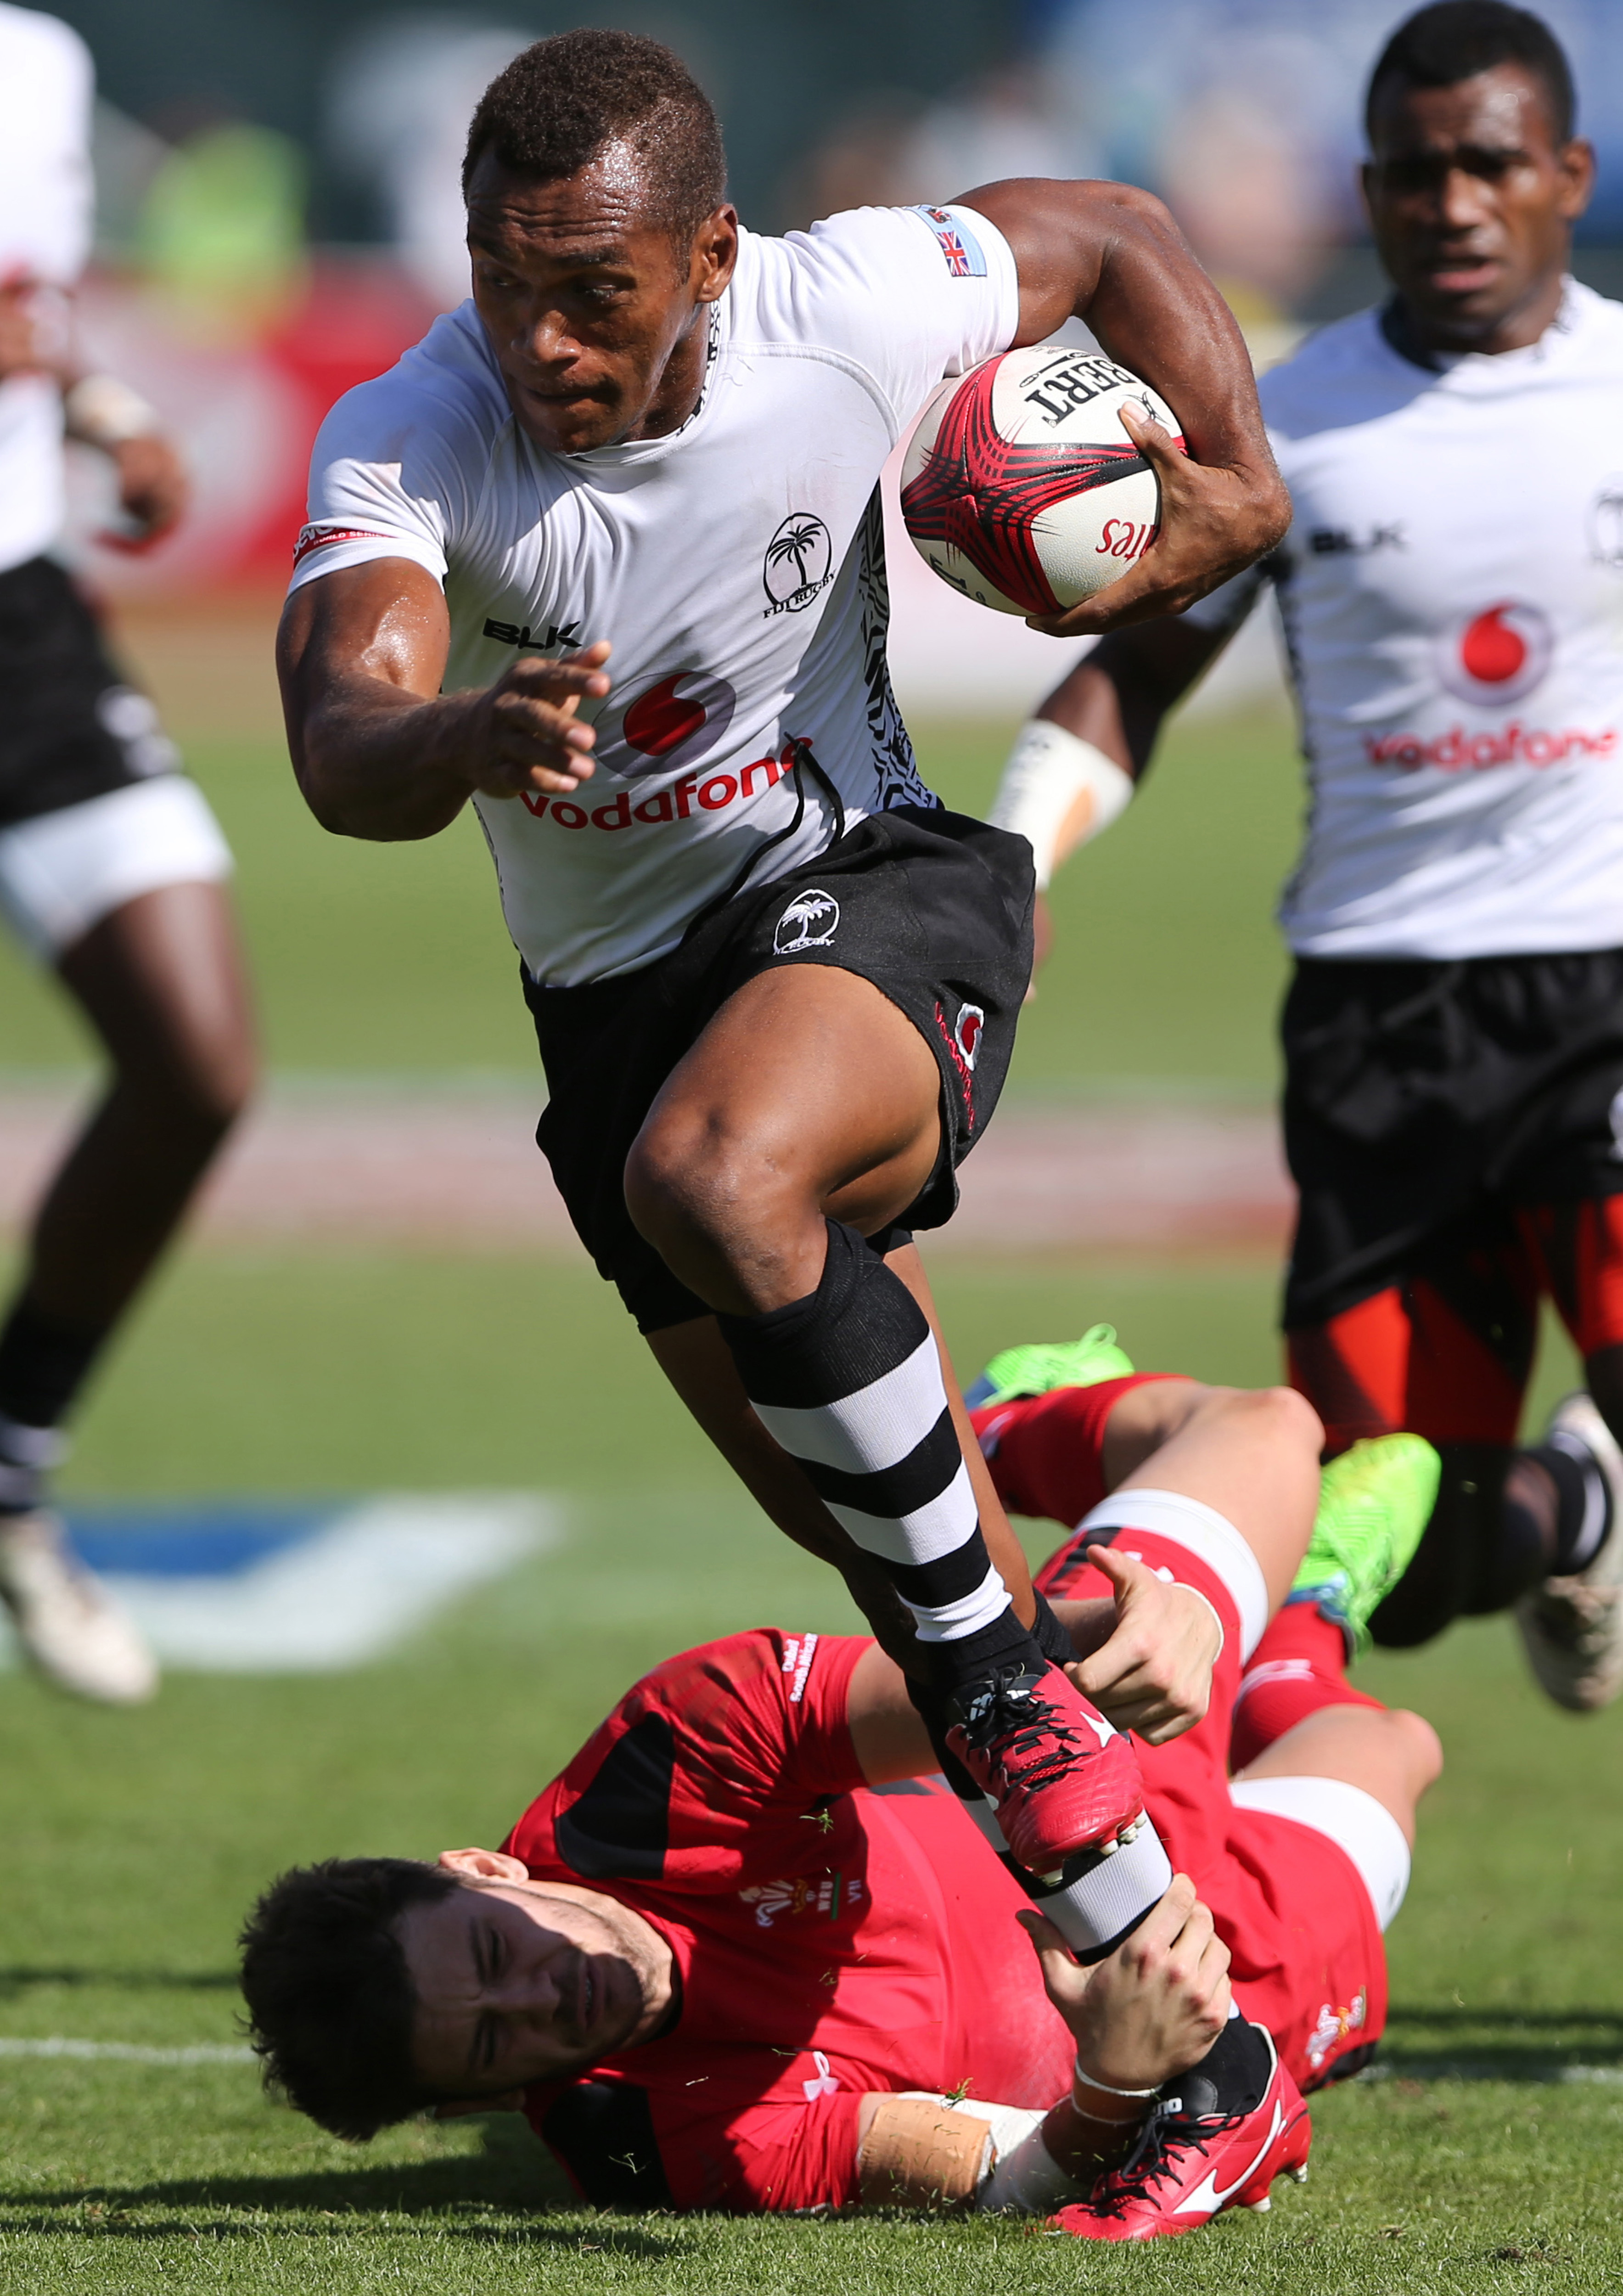 In this Dec. 6, 2014, file photo, Fiji's Osea Kolinisau runs with the ball during a quarter final match of Sevens World Series against Wales in Dubai, United Arab Emirates. The inspirational Kolinisau will lead the men's team, after he has carried the Fij